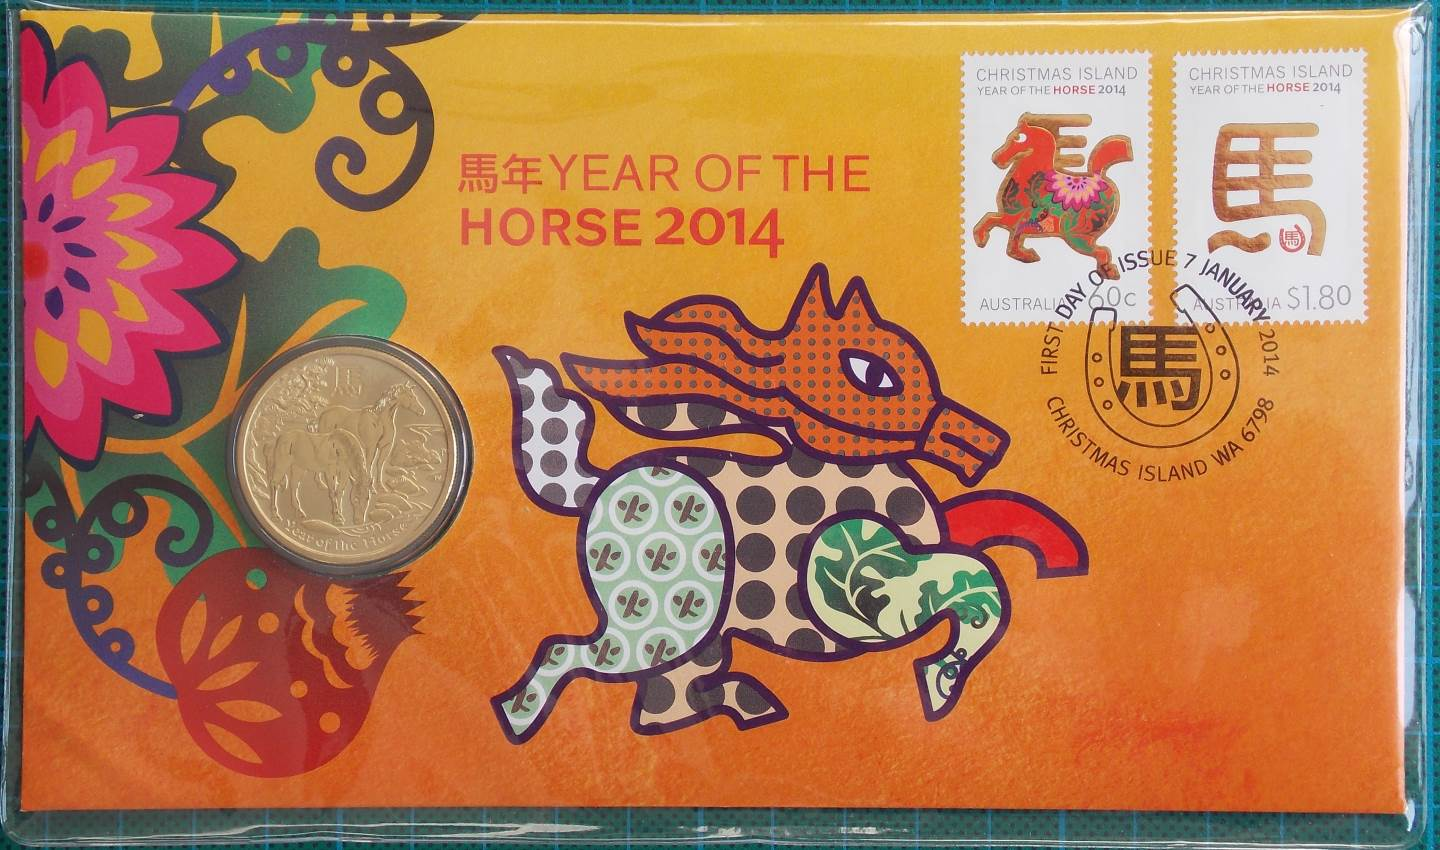 2014 Australia Year Of The Horse Coin and Stamp Folder